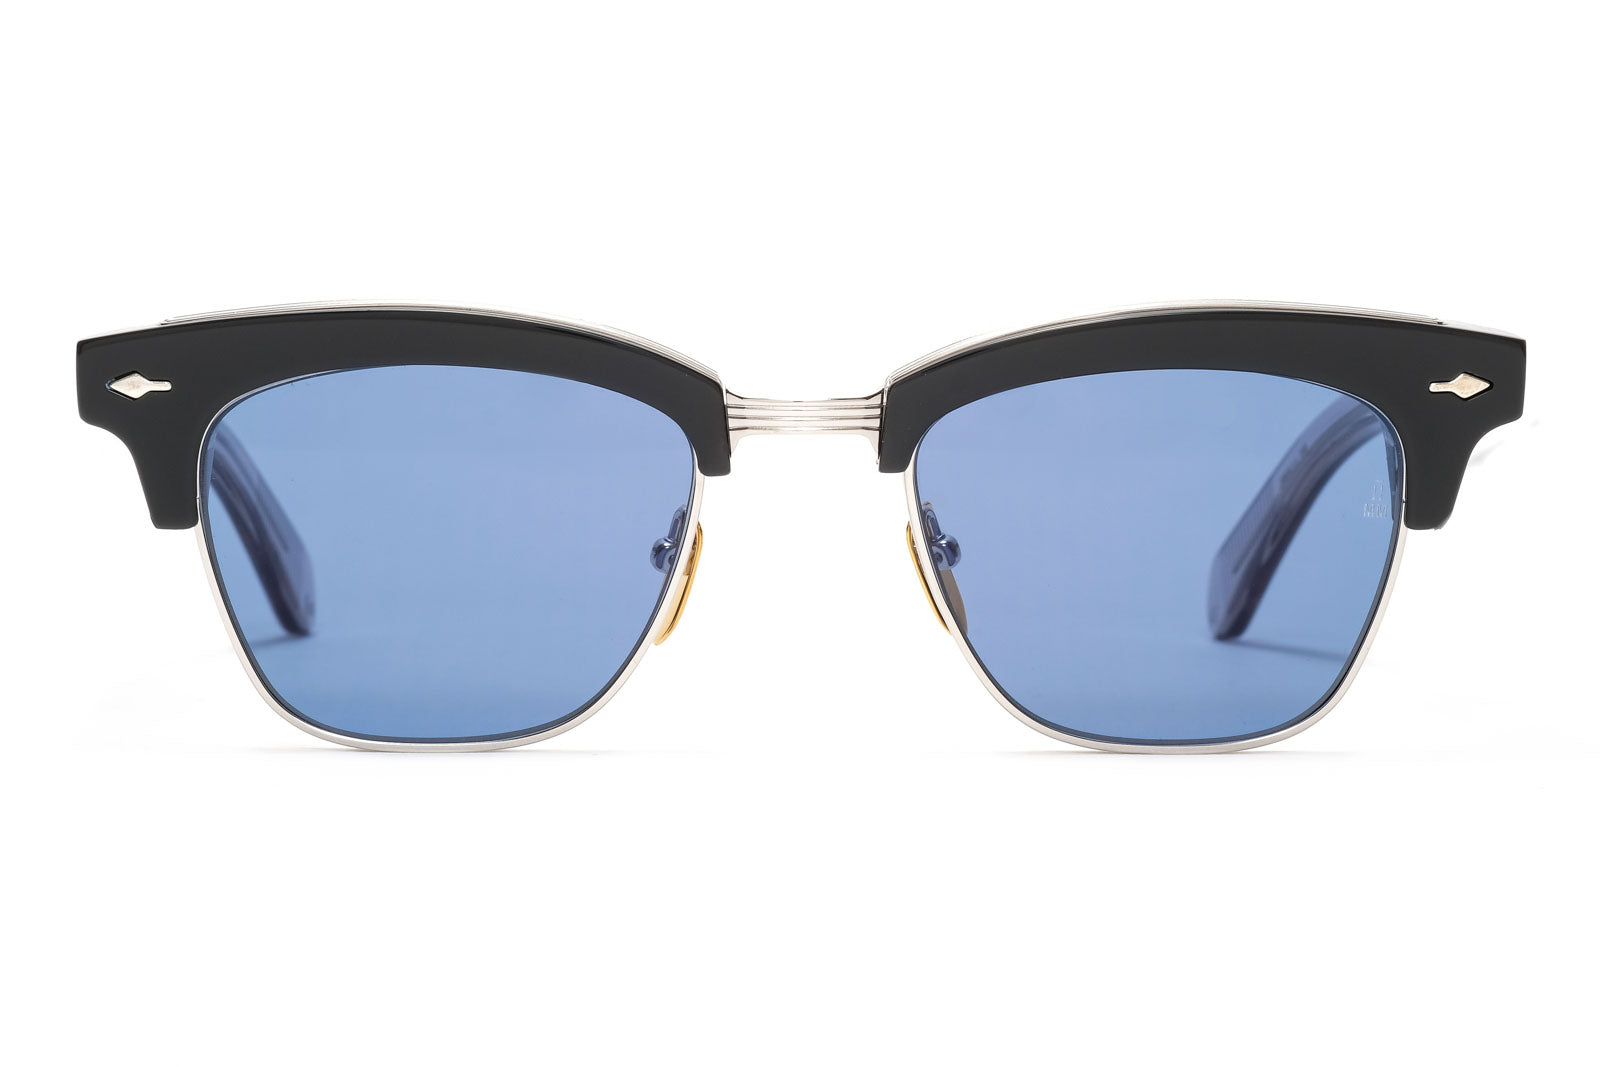 jacques marie mage sartre sunglasses miami